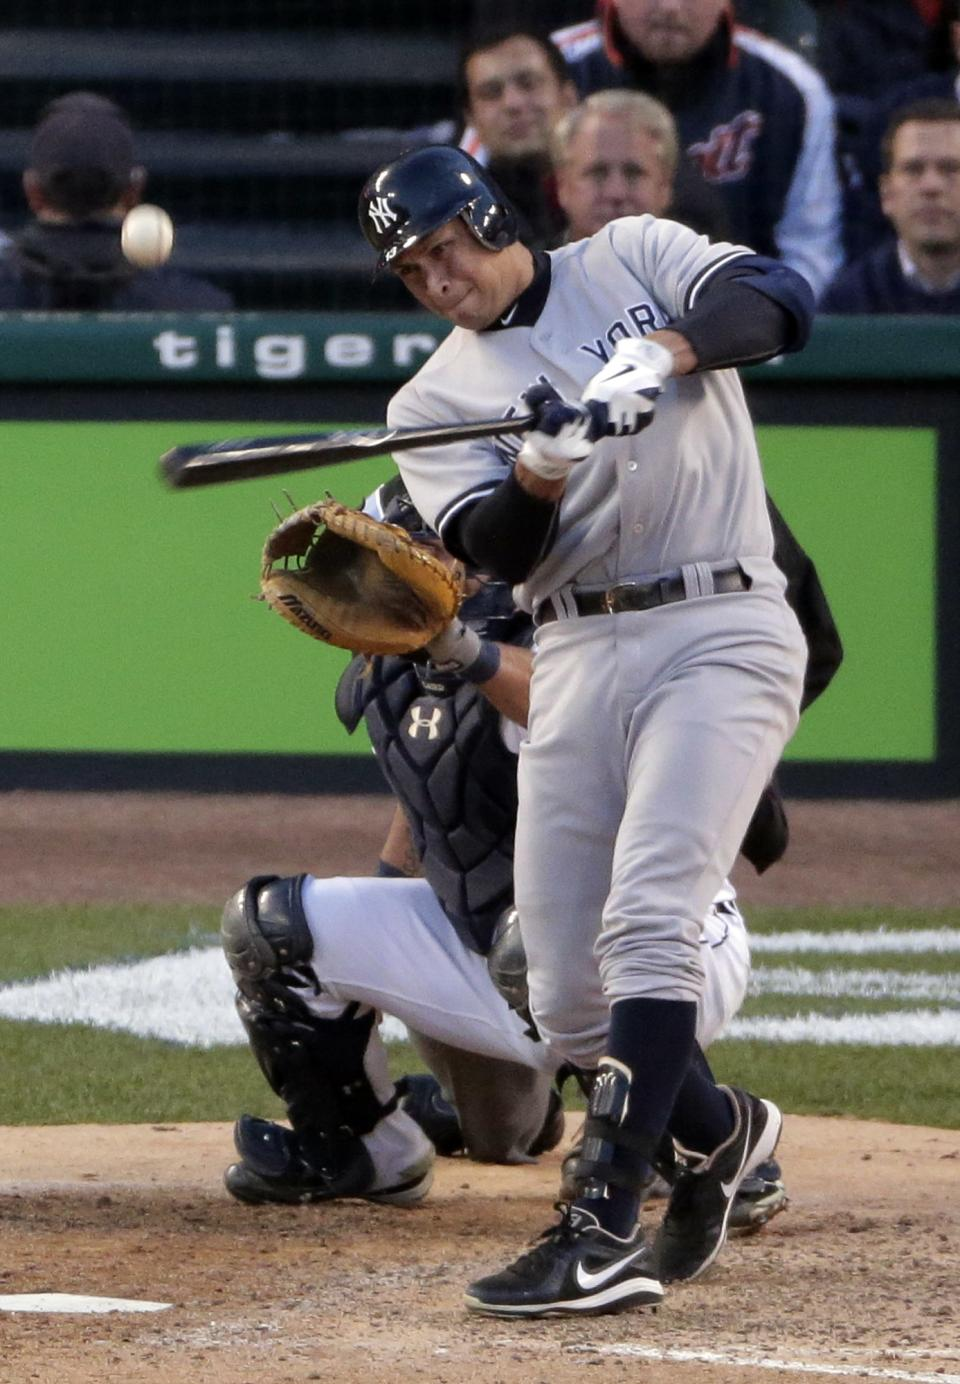 New York Yankees' Alex Rodriguez flies out in the sixth inning during Game 4 of the American League championship series against the Detroit Tigers Thursday, Oct. 18, 2012, in Detroit. (AP Photo/Charlie Riedel)